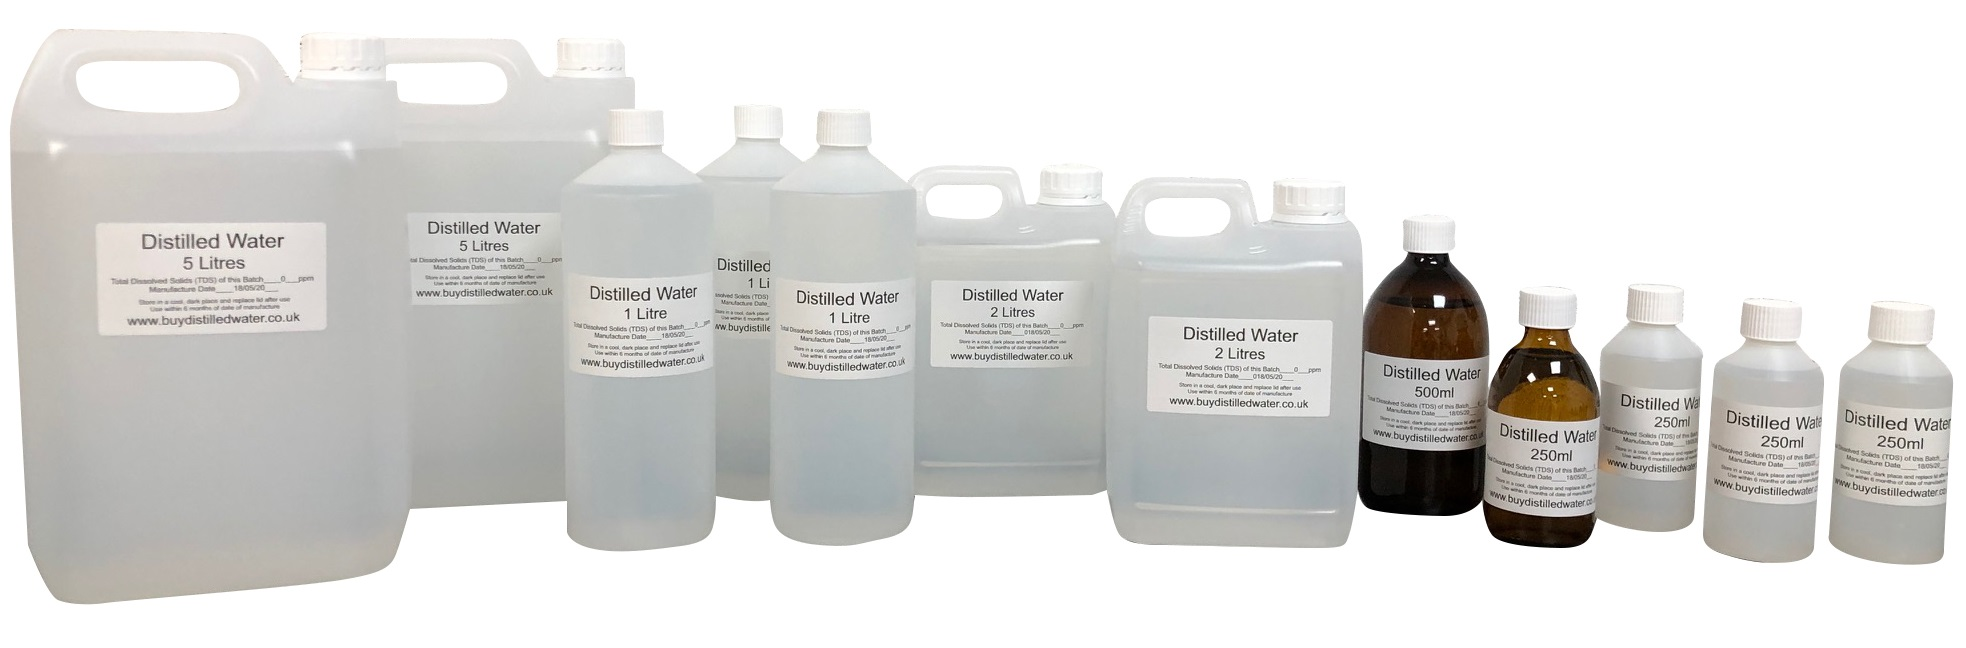 Our range of Distilled Water